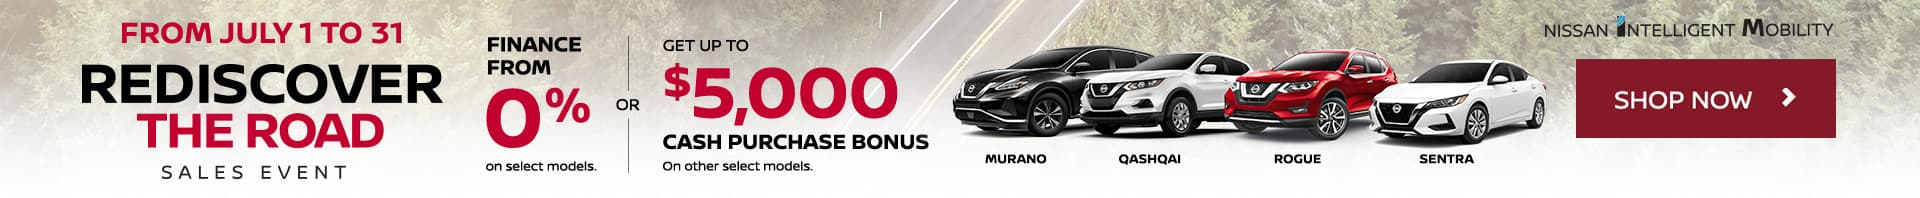 Nissan July 2020 Oem Offer 68x7